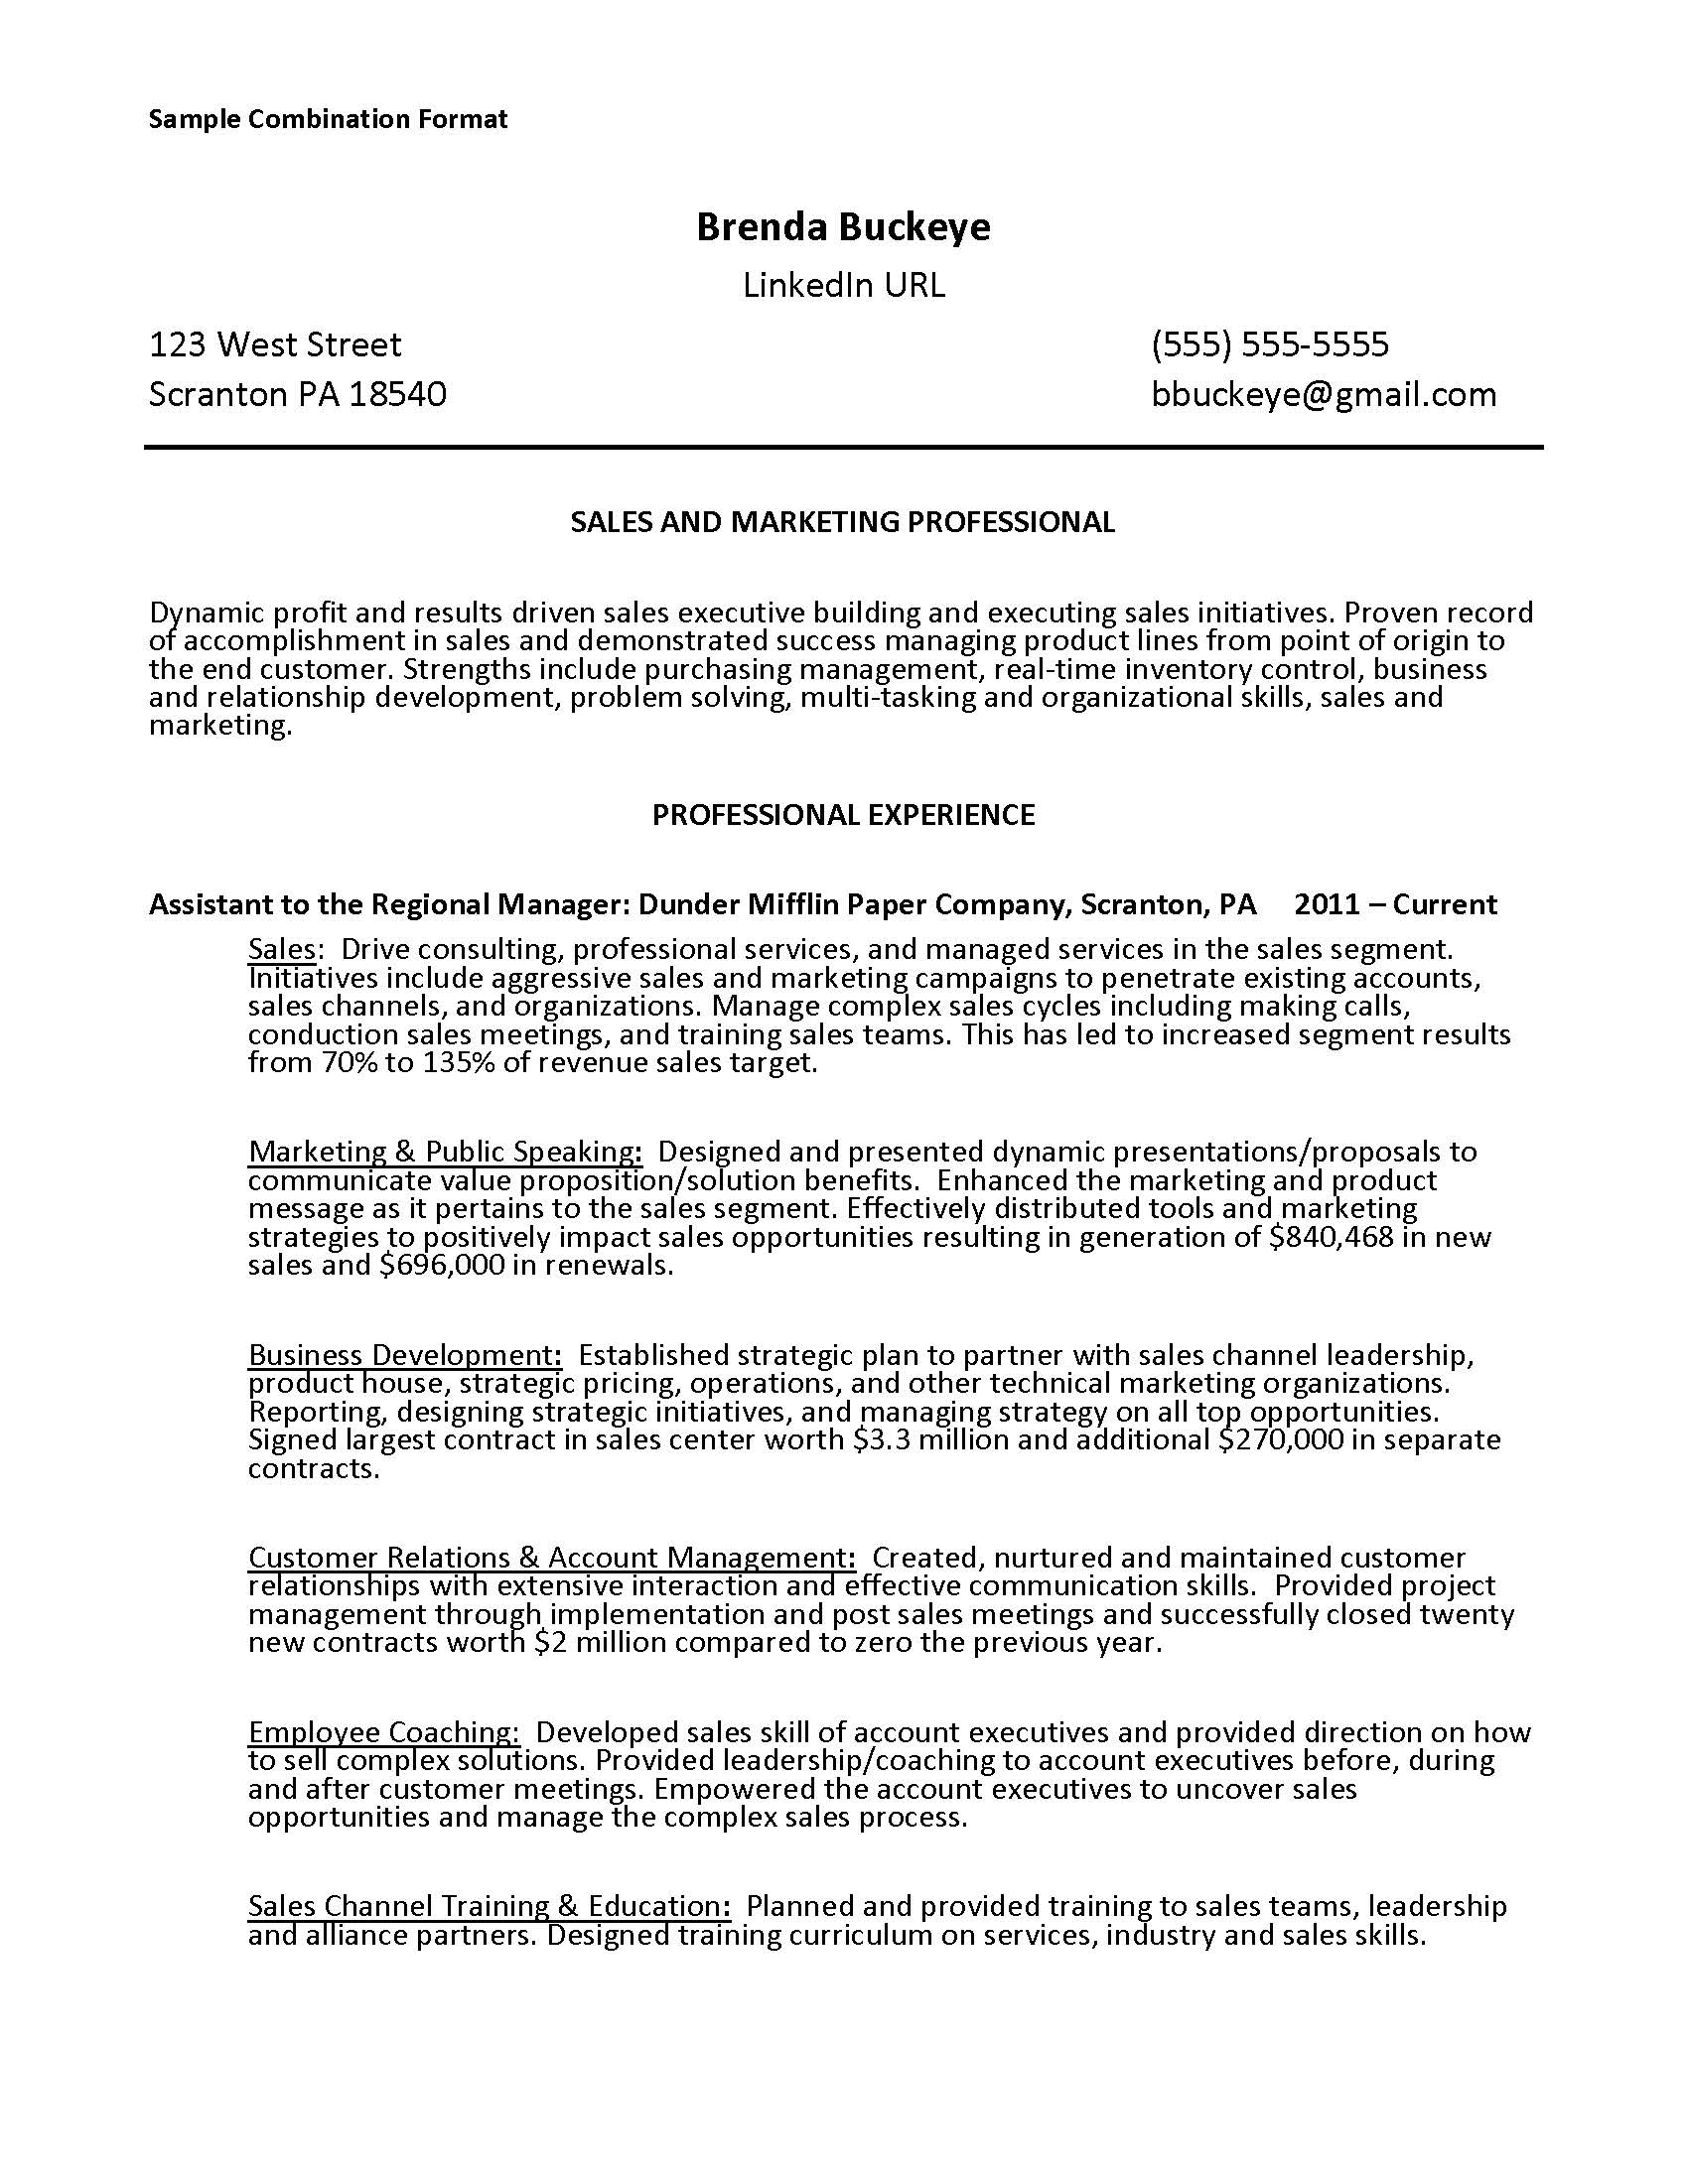 Hardware Expert Cover Letter Resumes And Cover Letters The Ohio State University Alumni